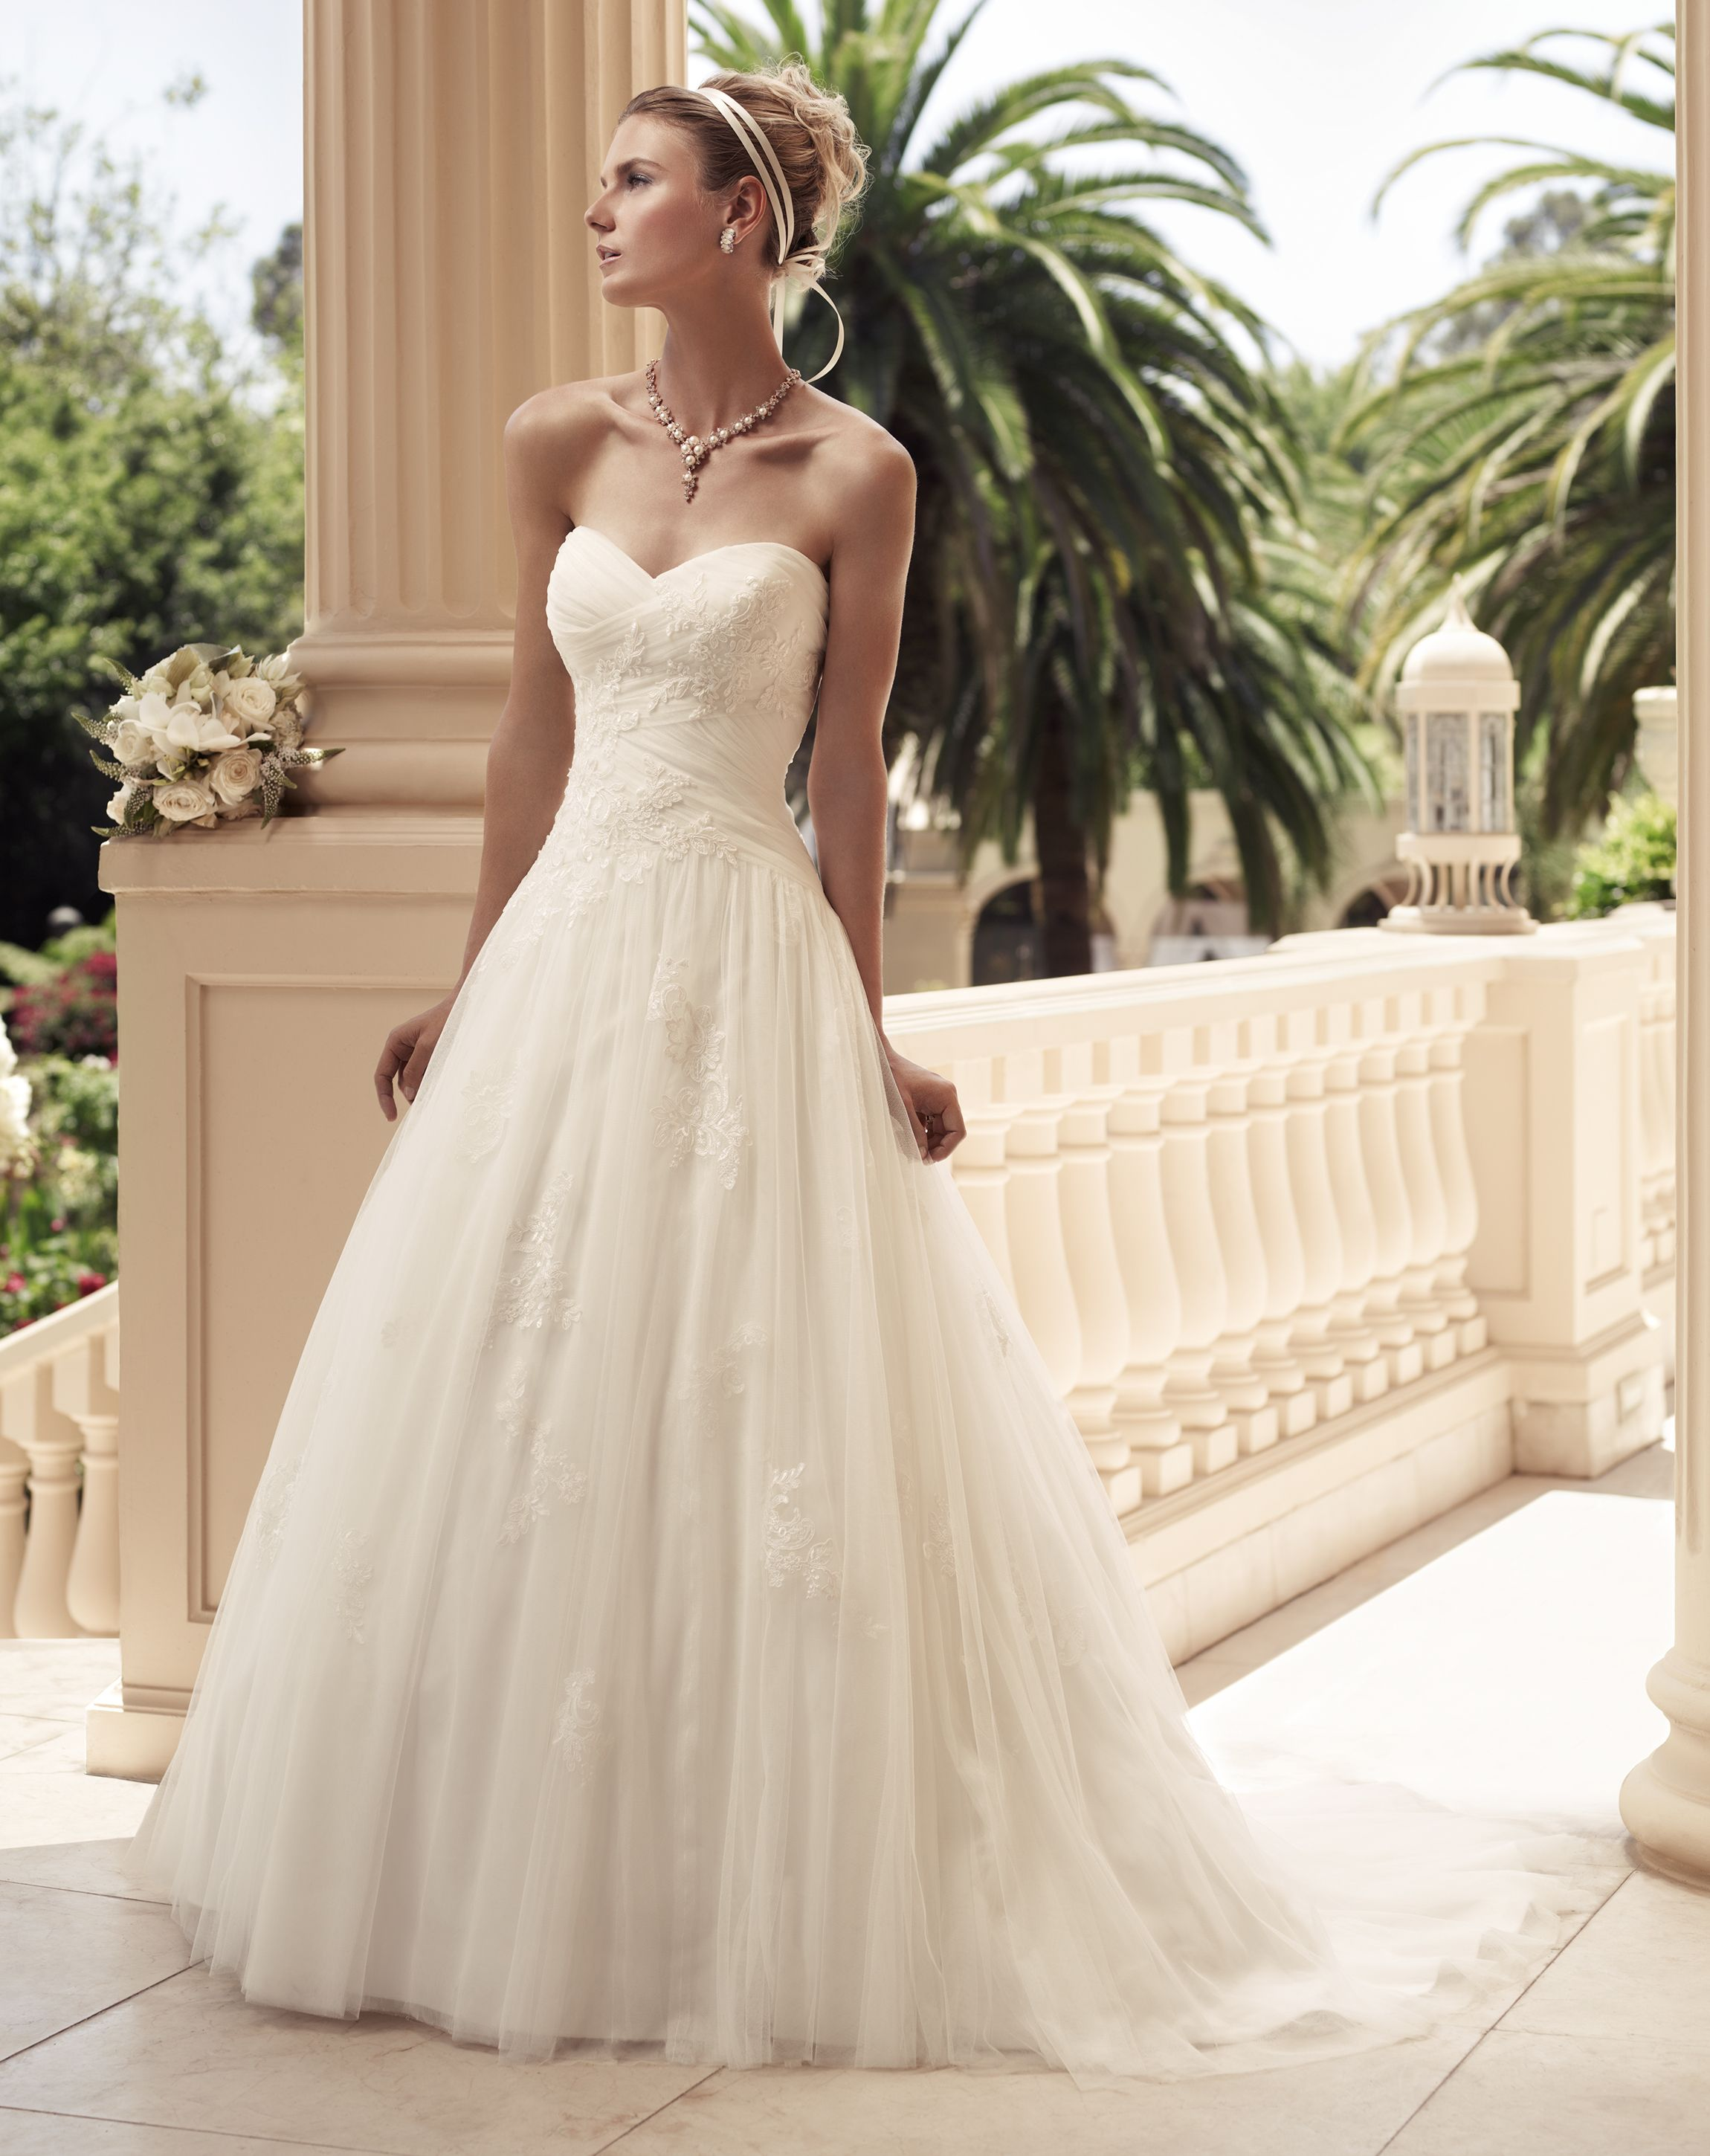 Visit us today to try on this beautiful casablanca bridal